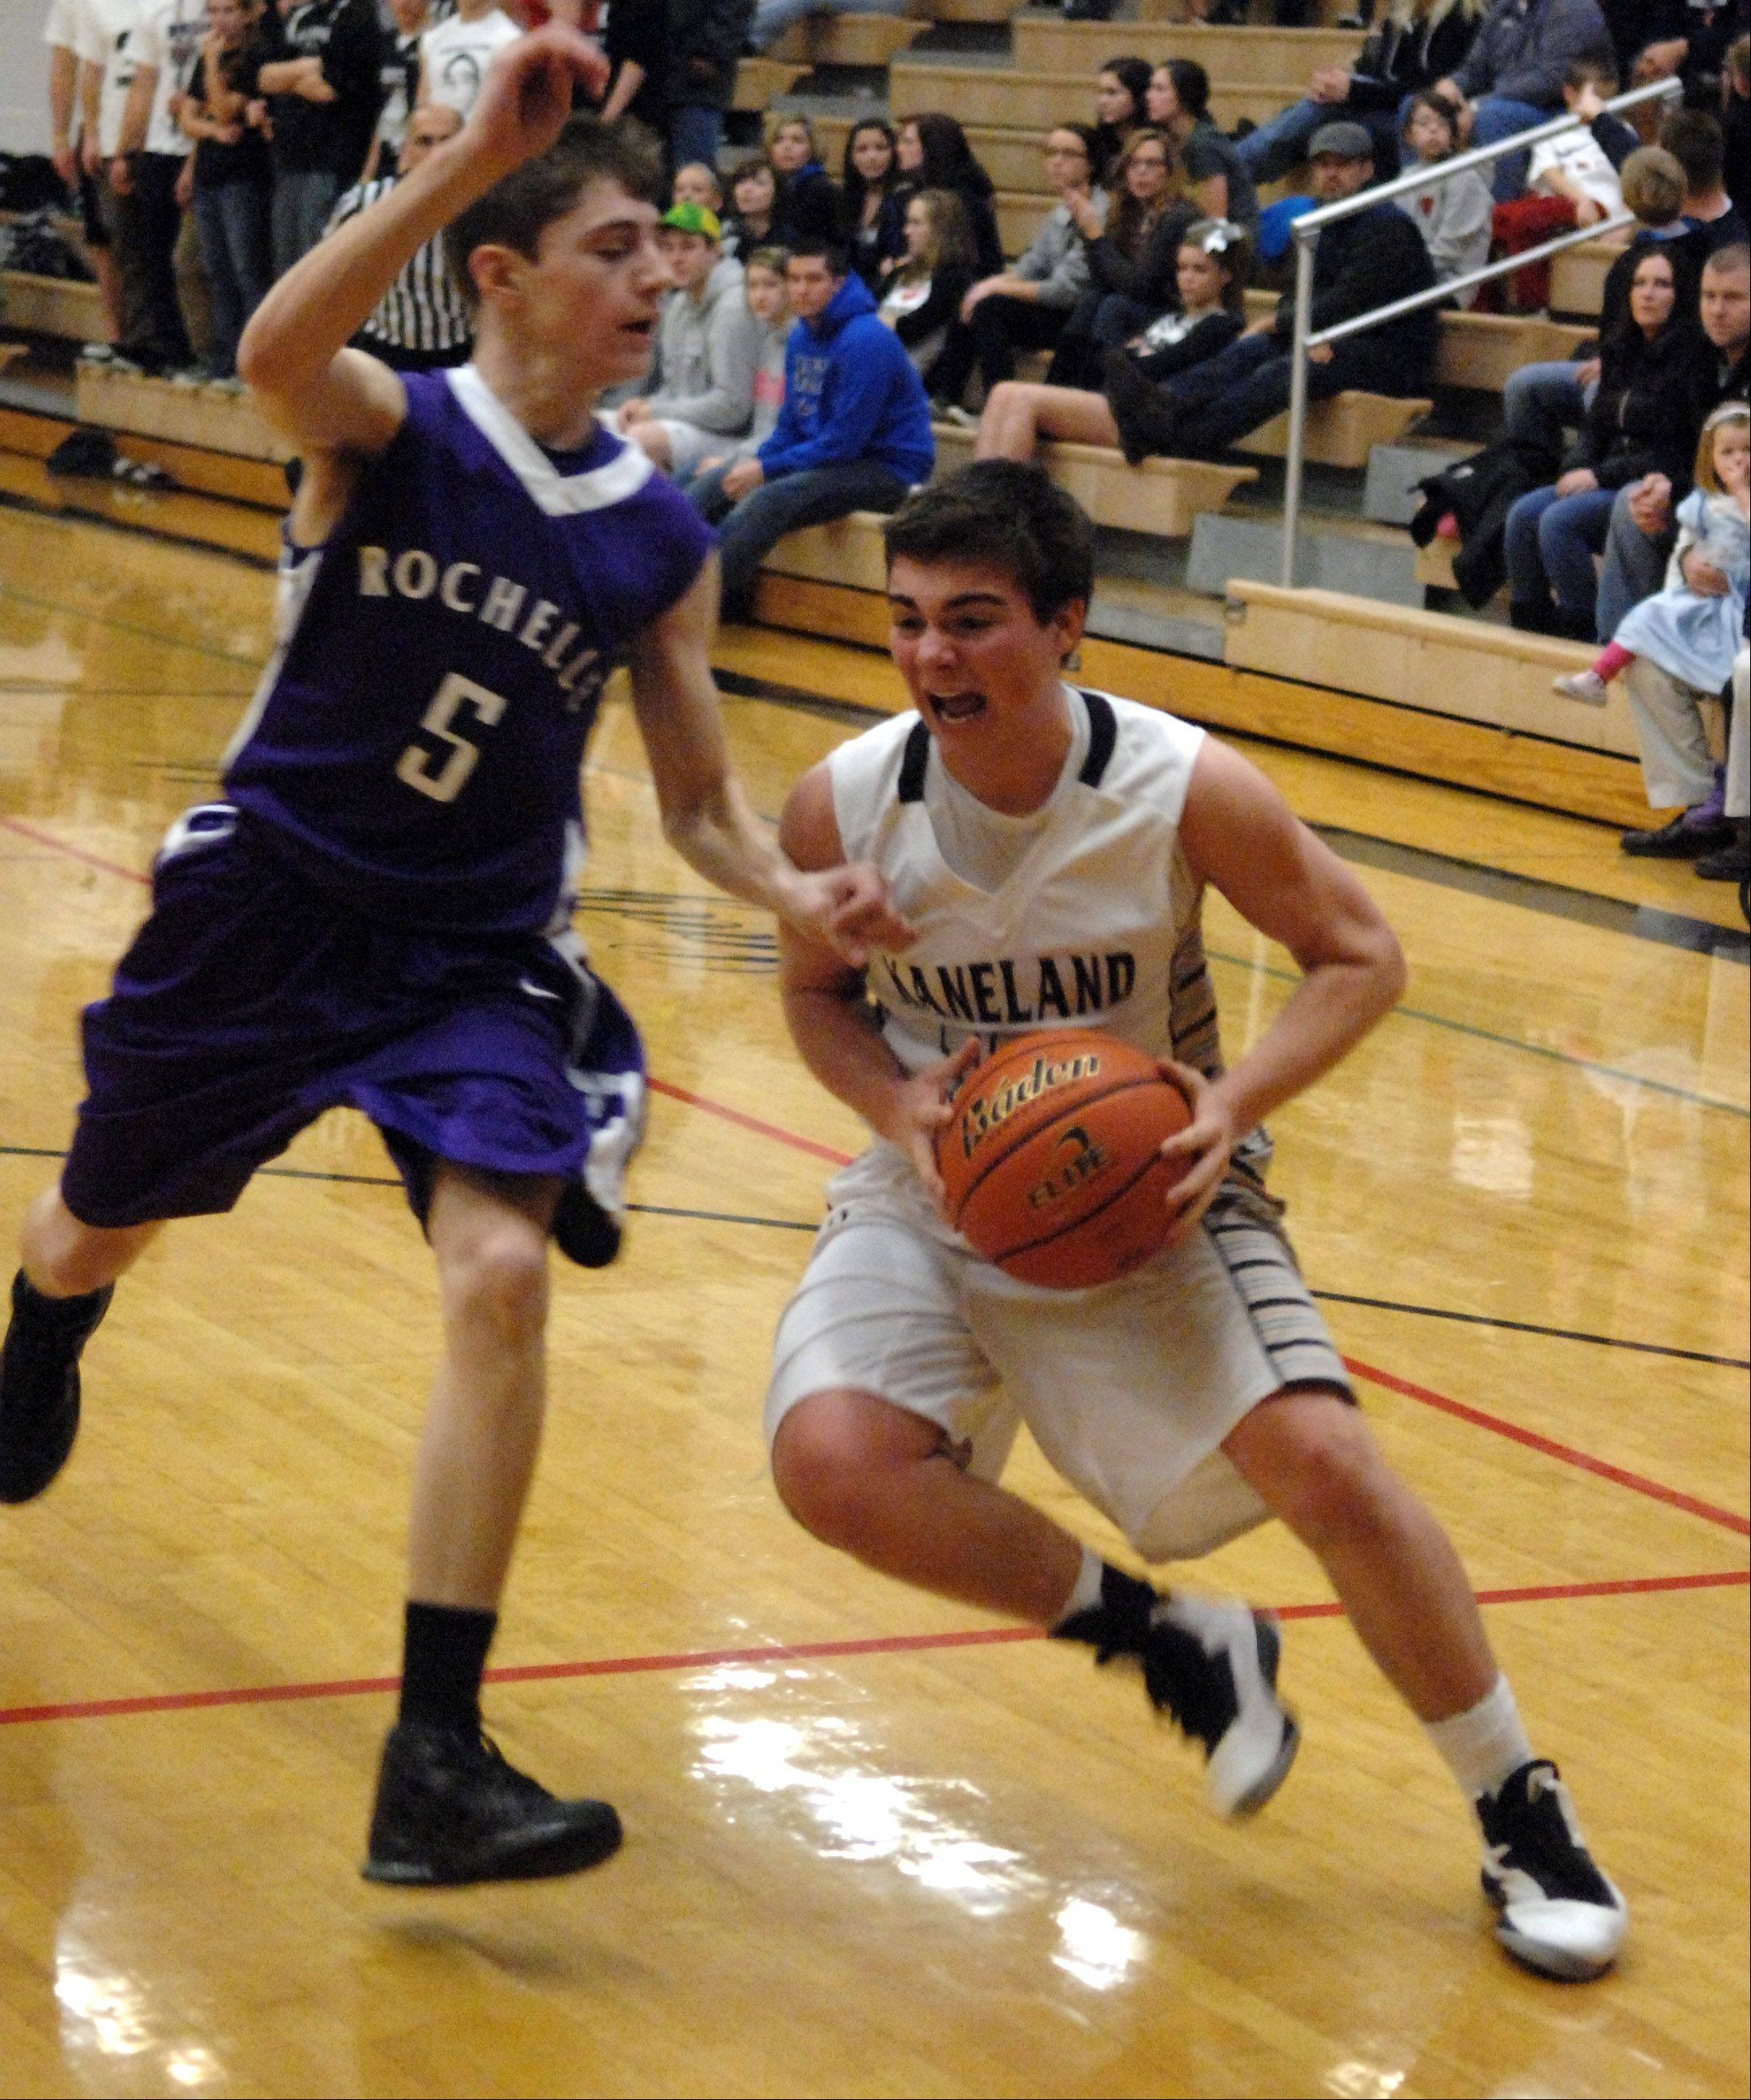 Kaneland's Connor Fedderly tries to drive the baseline as he is defended by Rochelle's Aaron Mehrings.